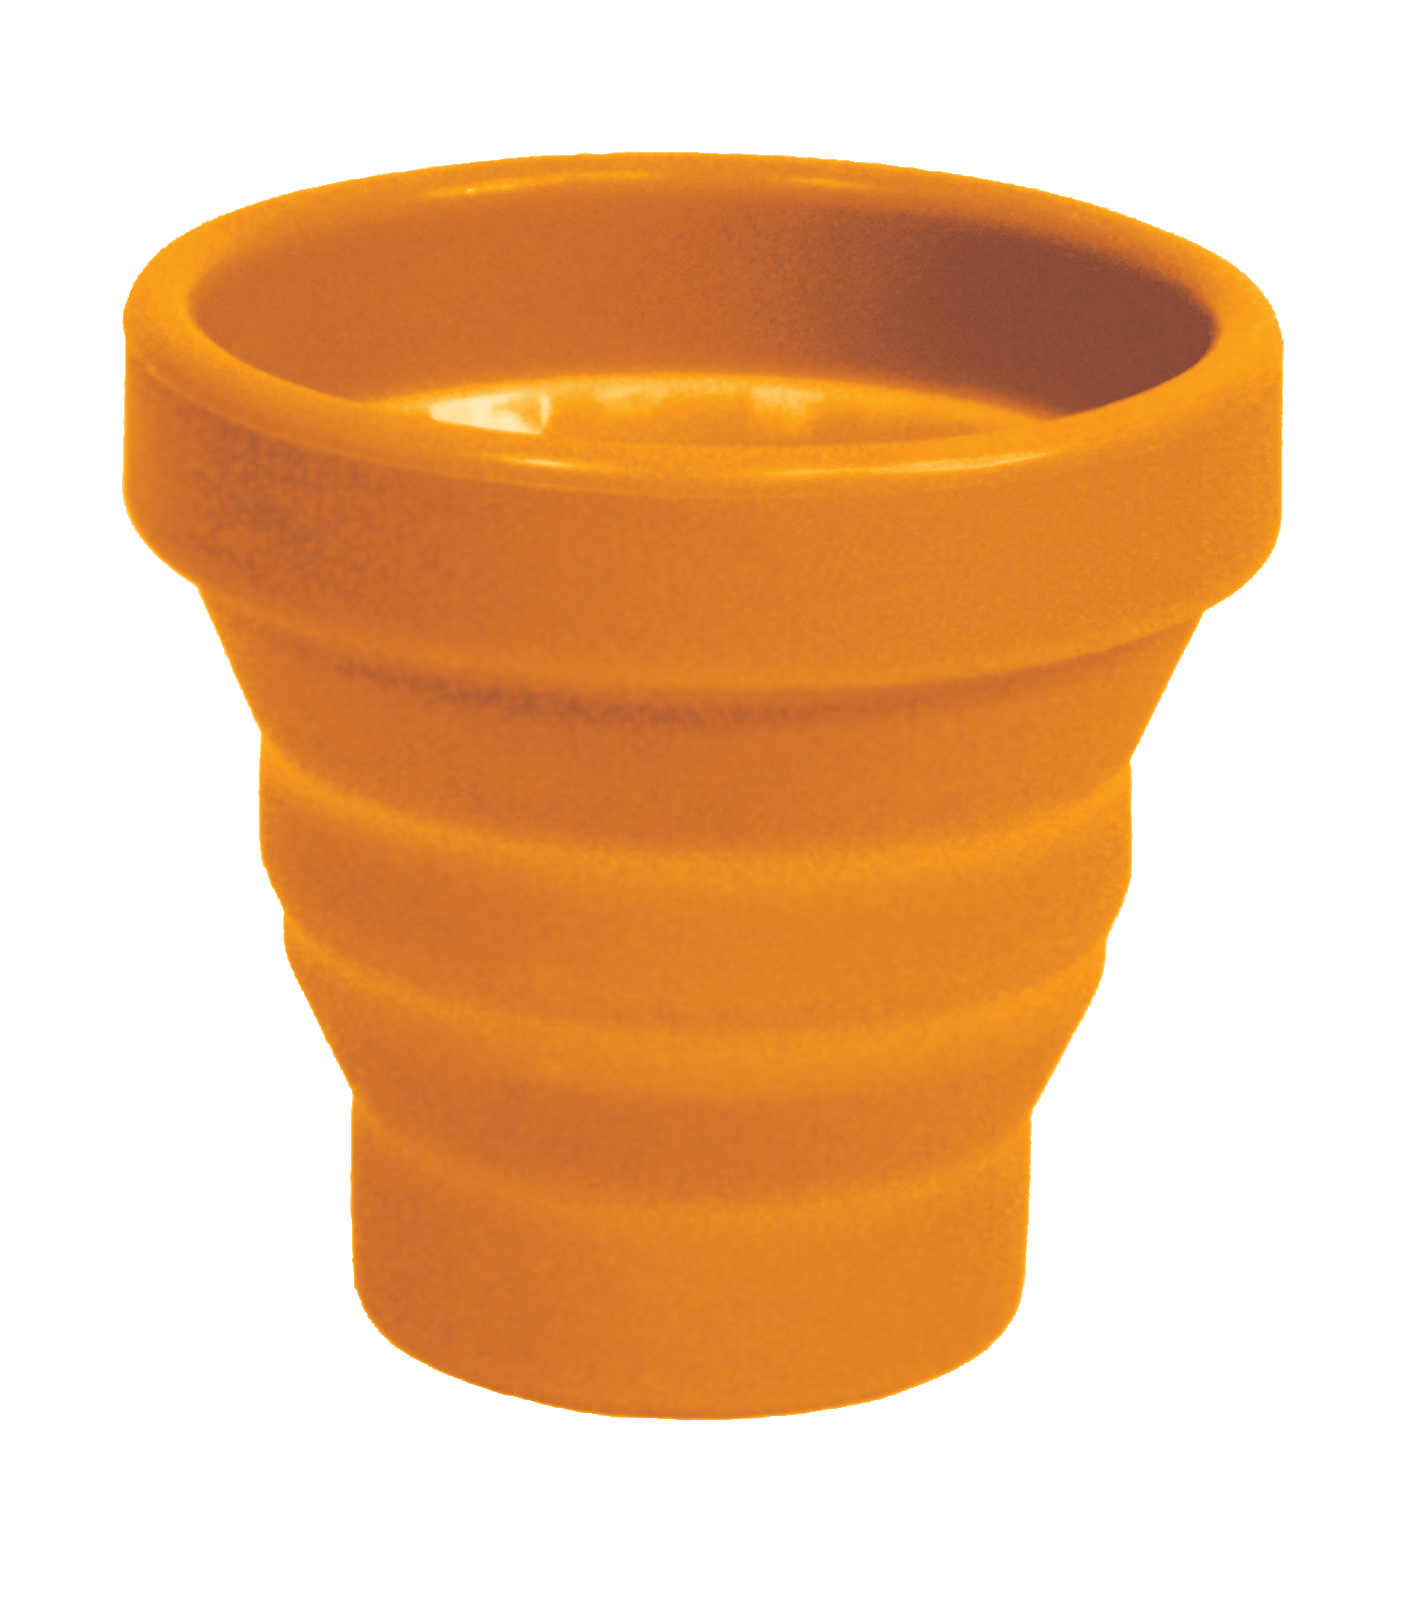 20-02079-08 - UST Brands FlexWare Cup, Orange Peggable Box